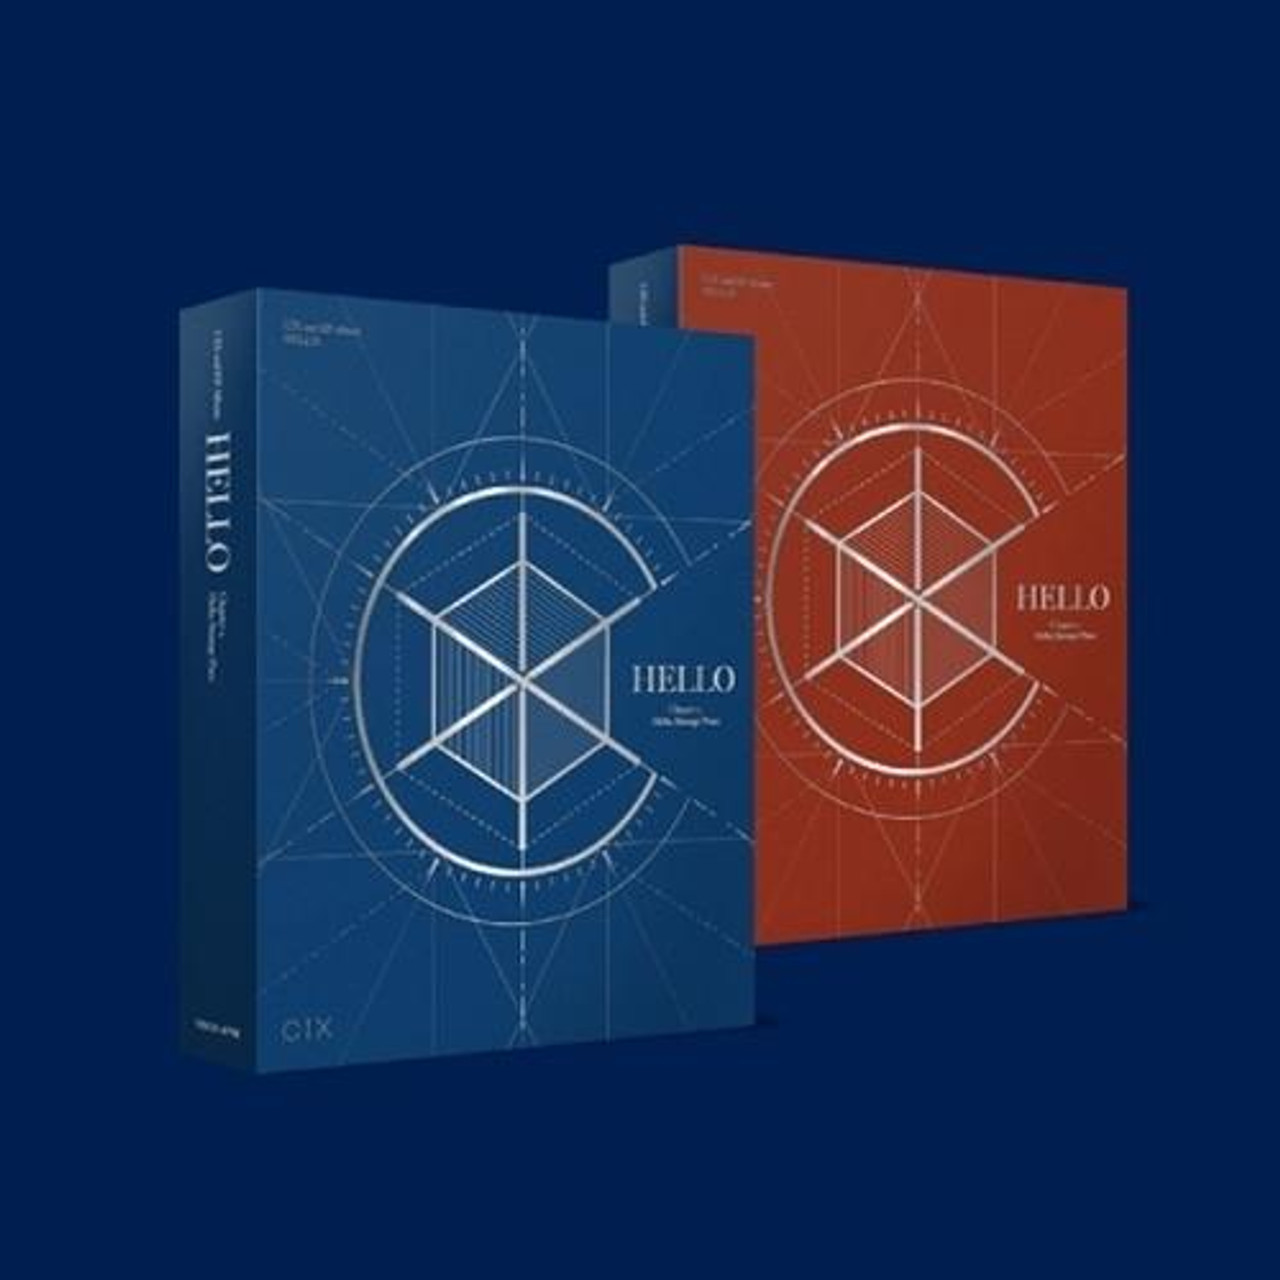 CIX  -2nd EP ALBUM HELLO' Chapter 2. Hello, Strange Place (A: Hello / B: Strange Place Ver.) + Poster